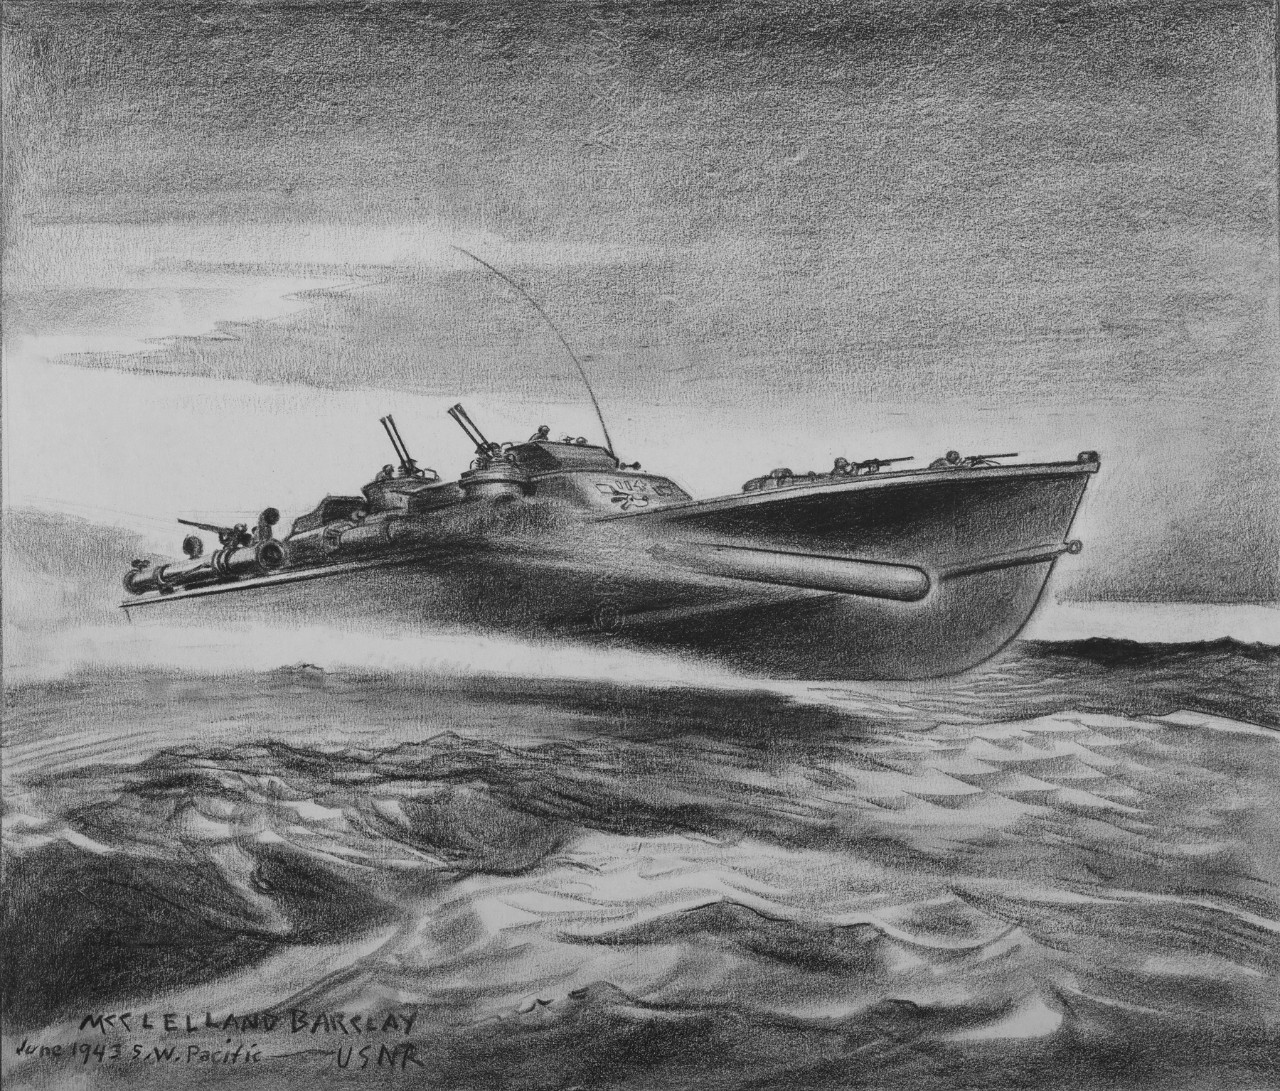 A torpedo boat traveling at high speed firing a torpedo